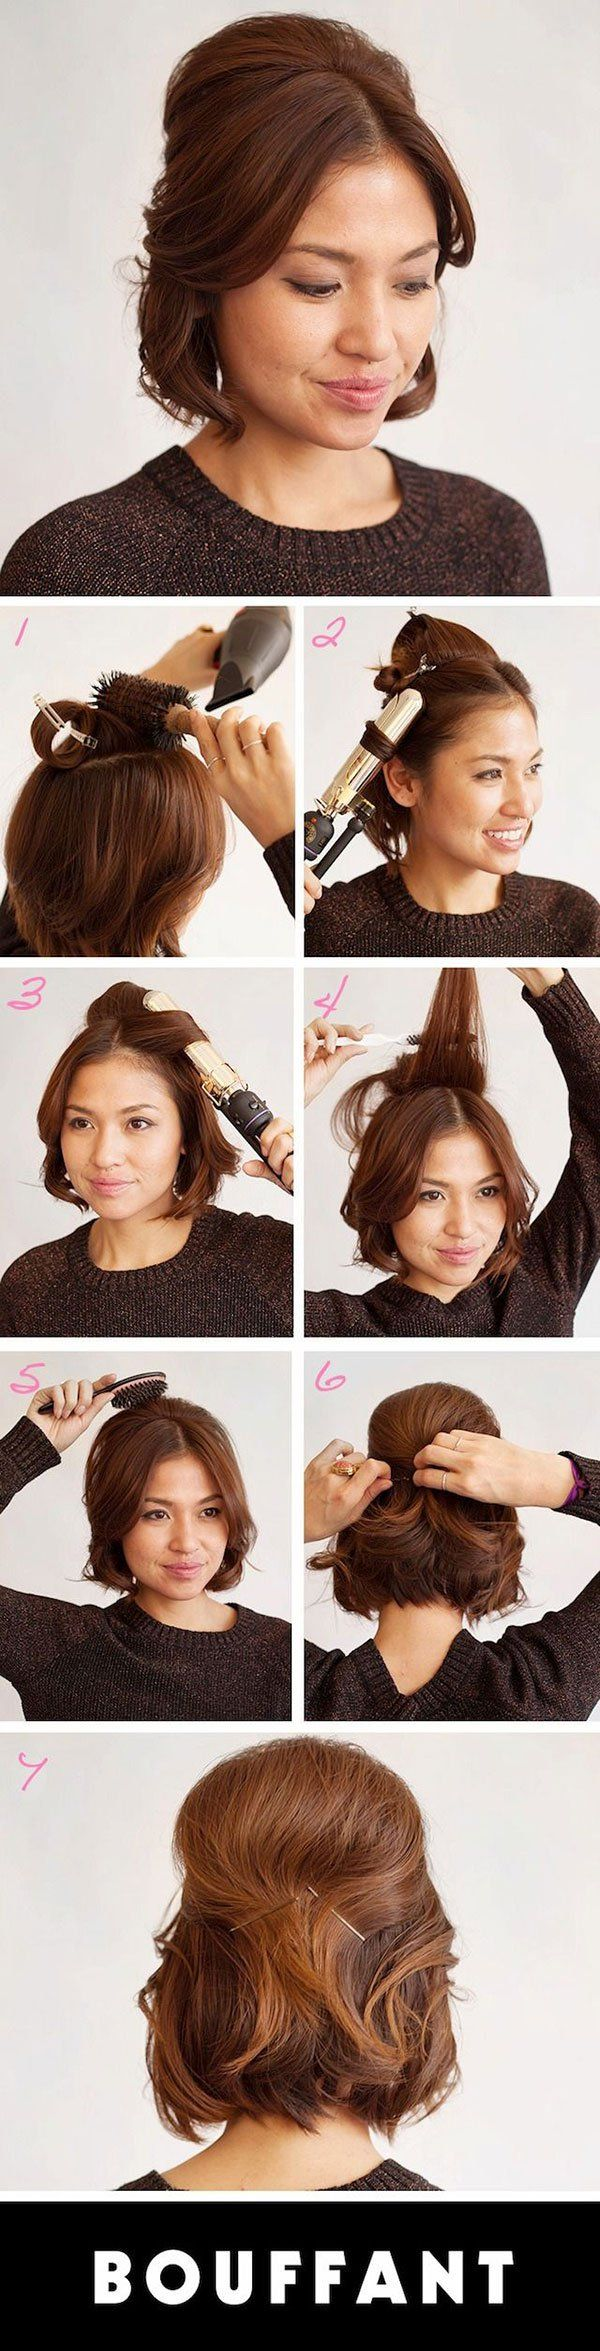 Easy formal hairstyles for short hair easy formal hairstyles